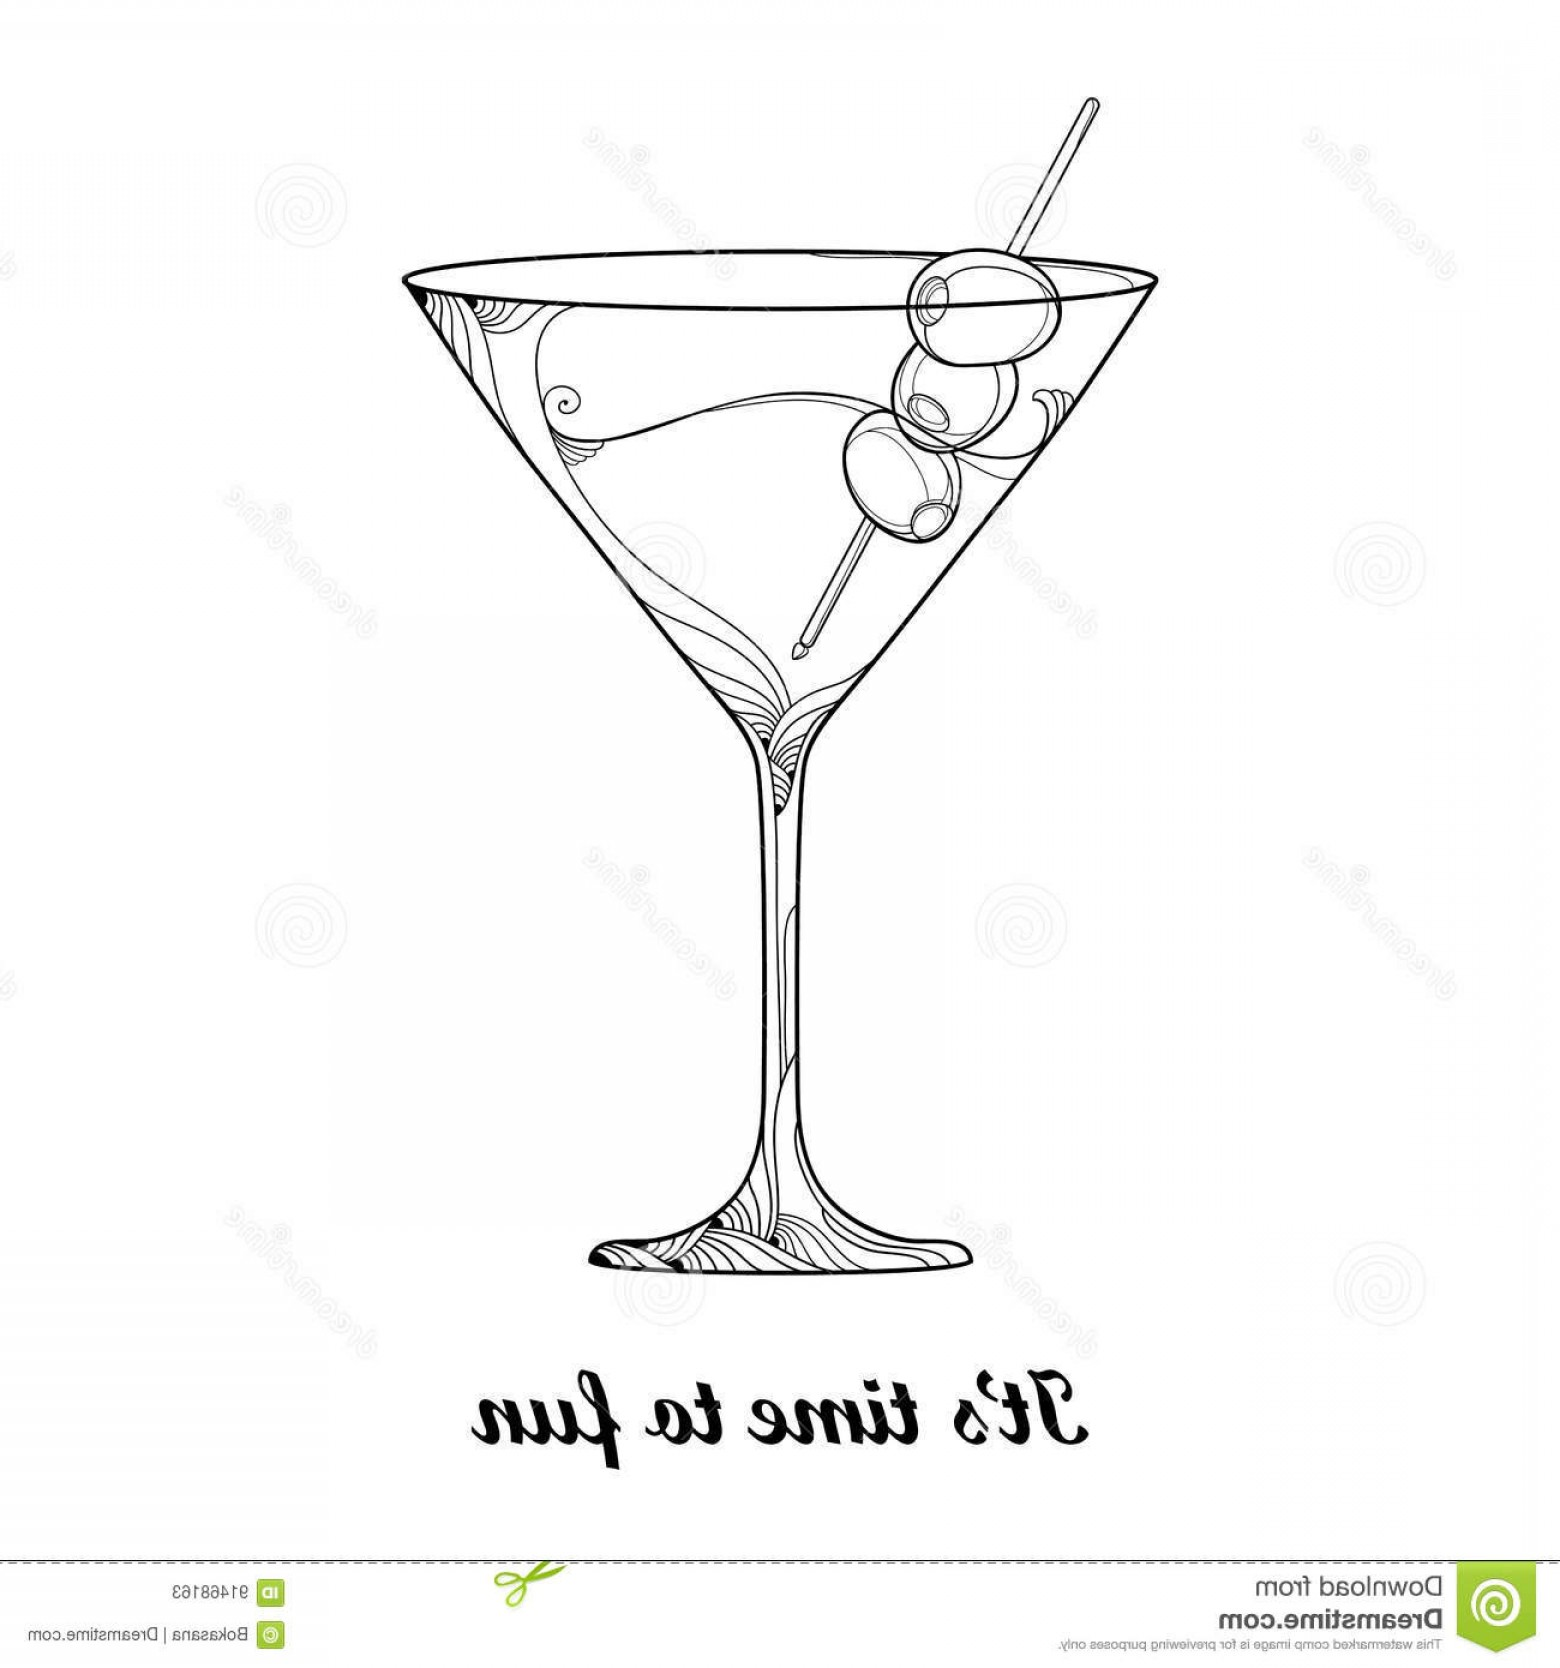 Cocktail Glasses Vector Art Decor: Stock Illustration Vector Cocktail Transparent Martini Glass Olive Fruit Black Isolated White Background Outline Glass Winery Image